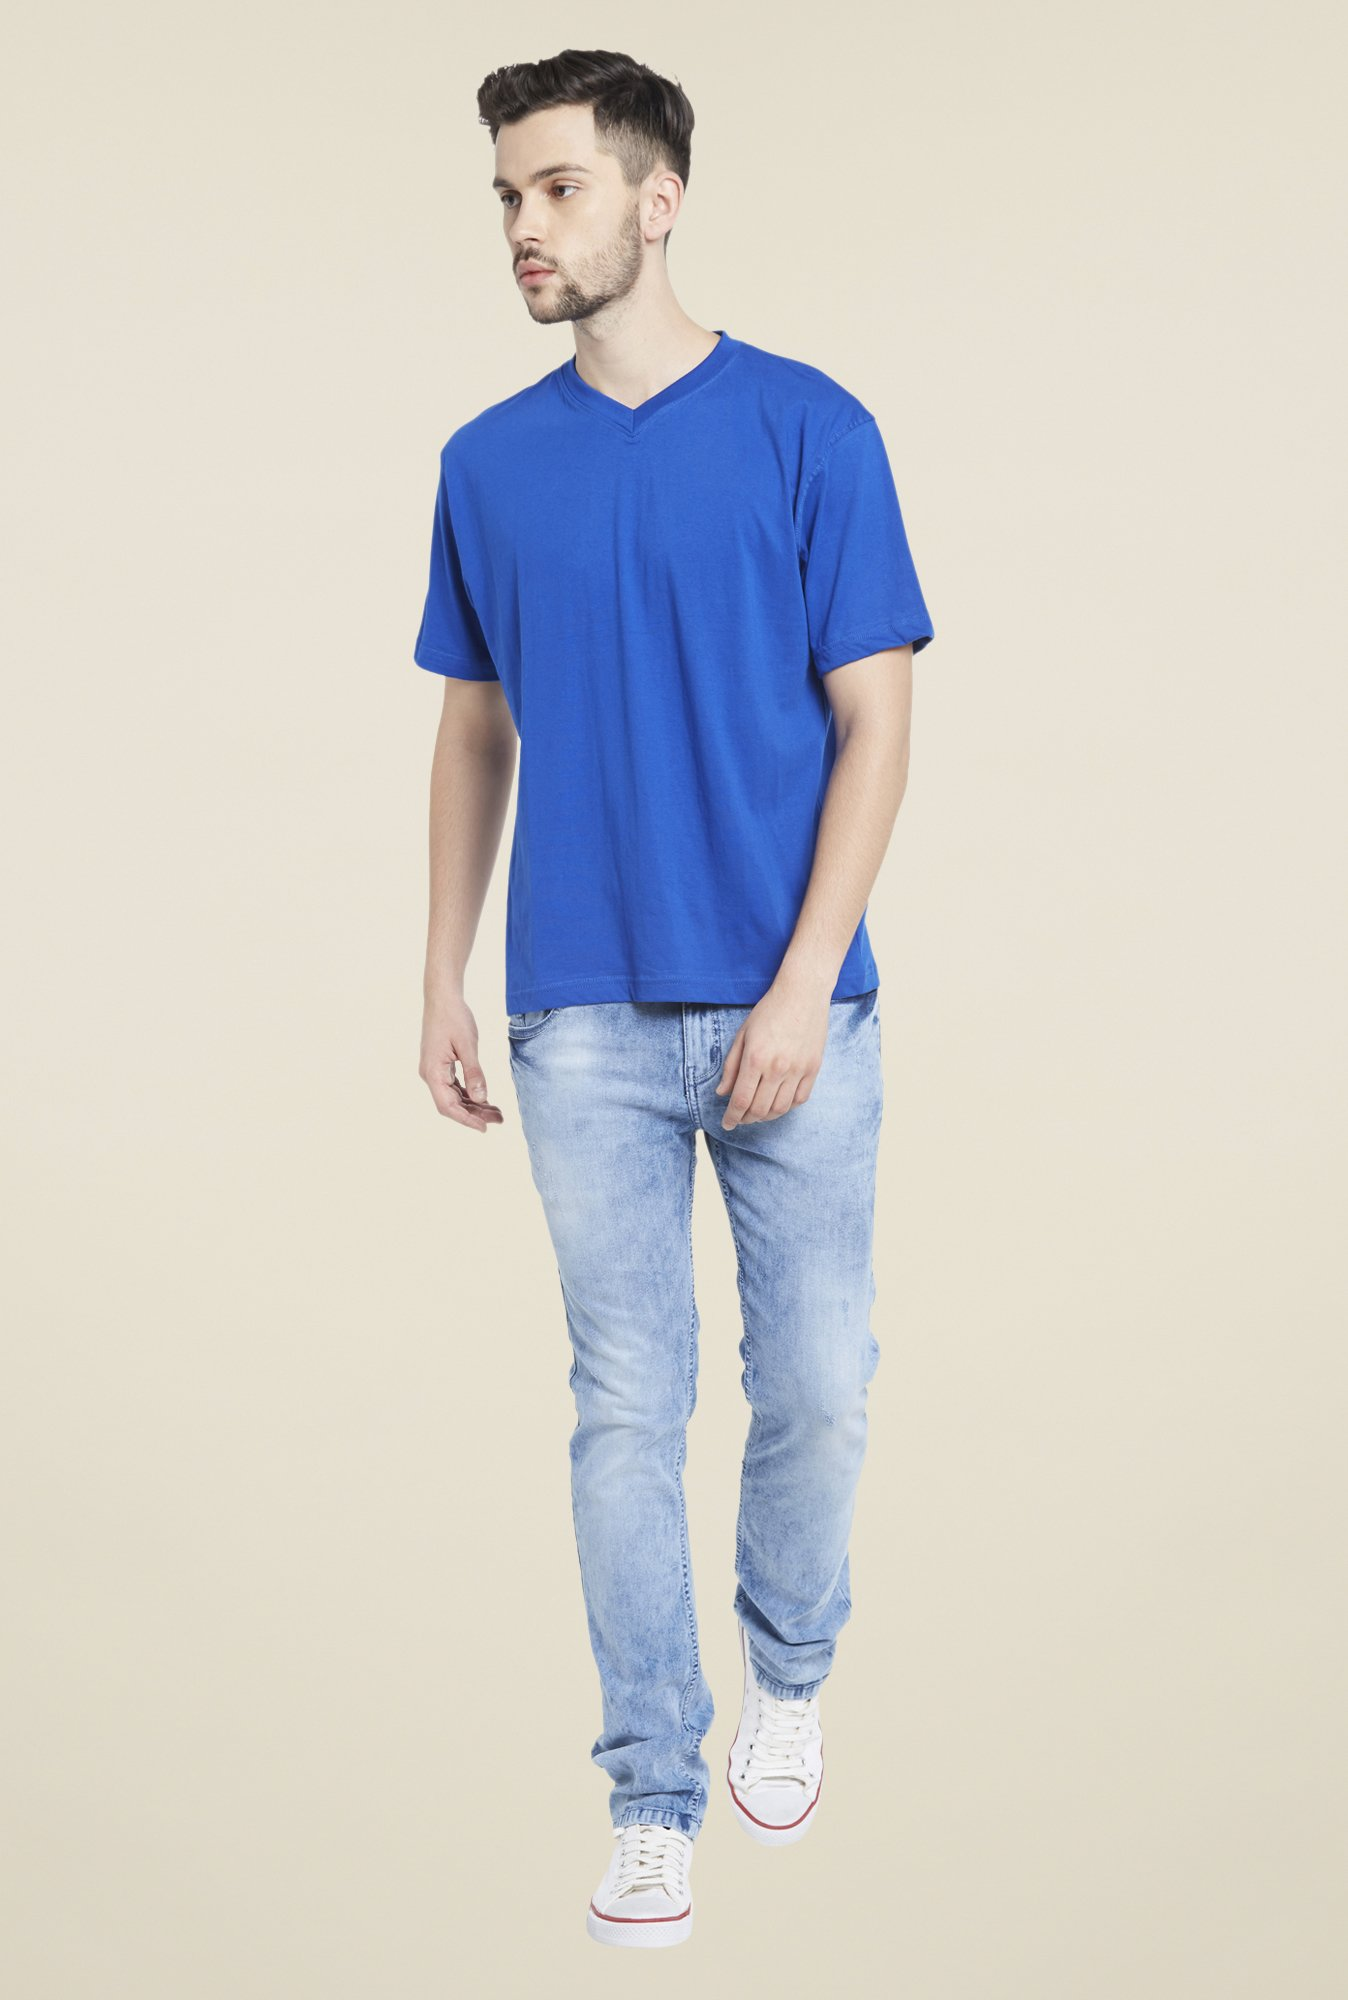 Globus Blue V Neck T Shirt